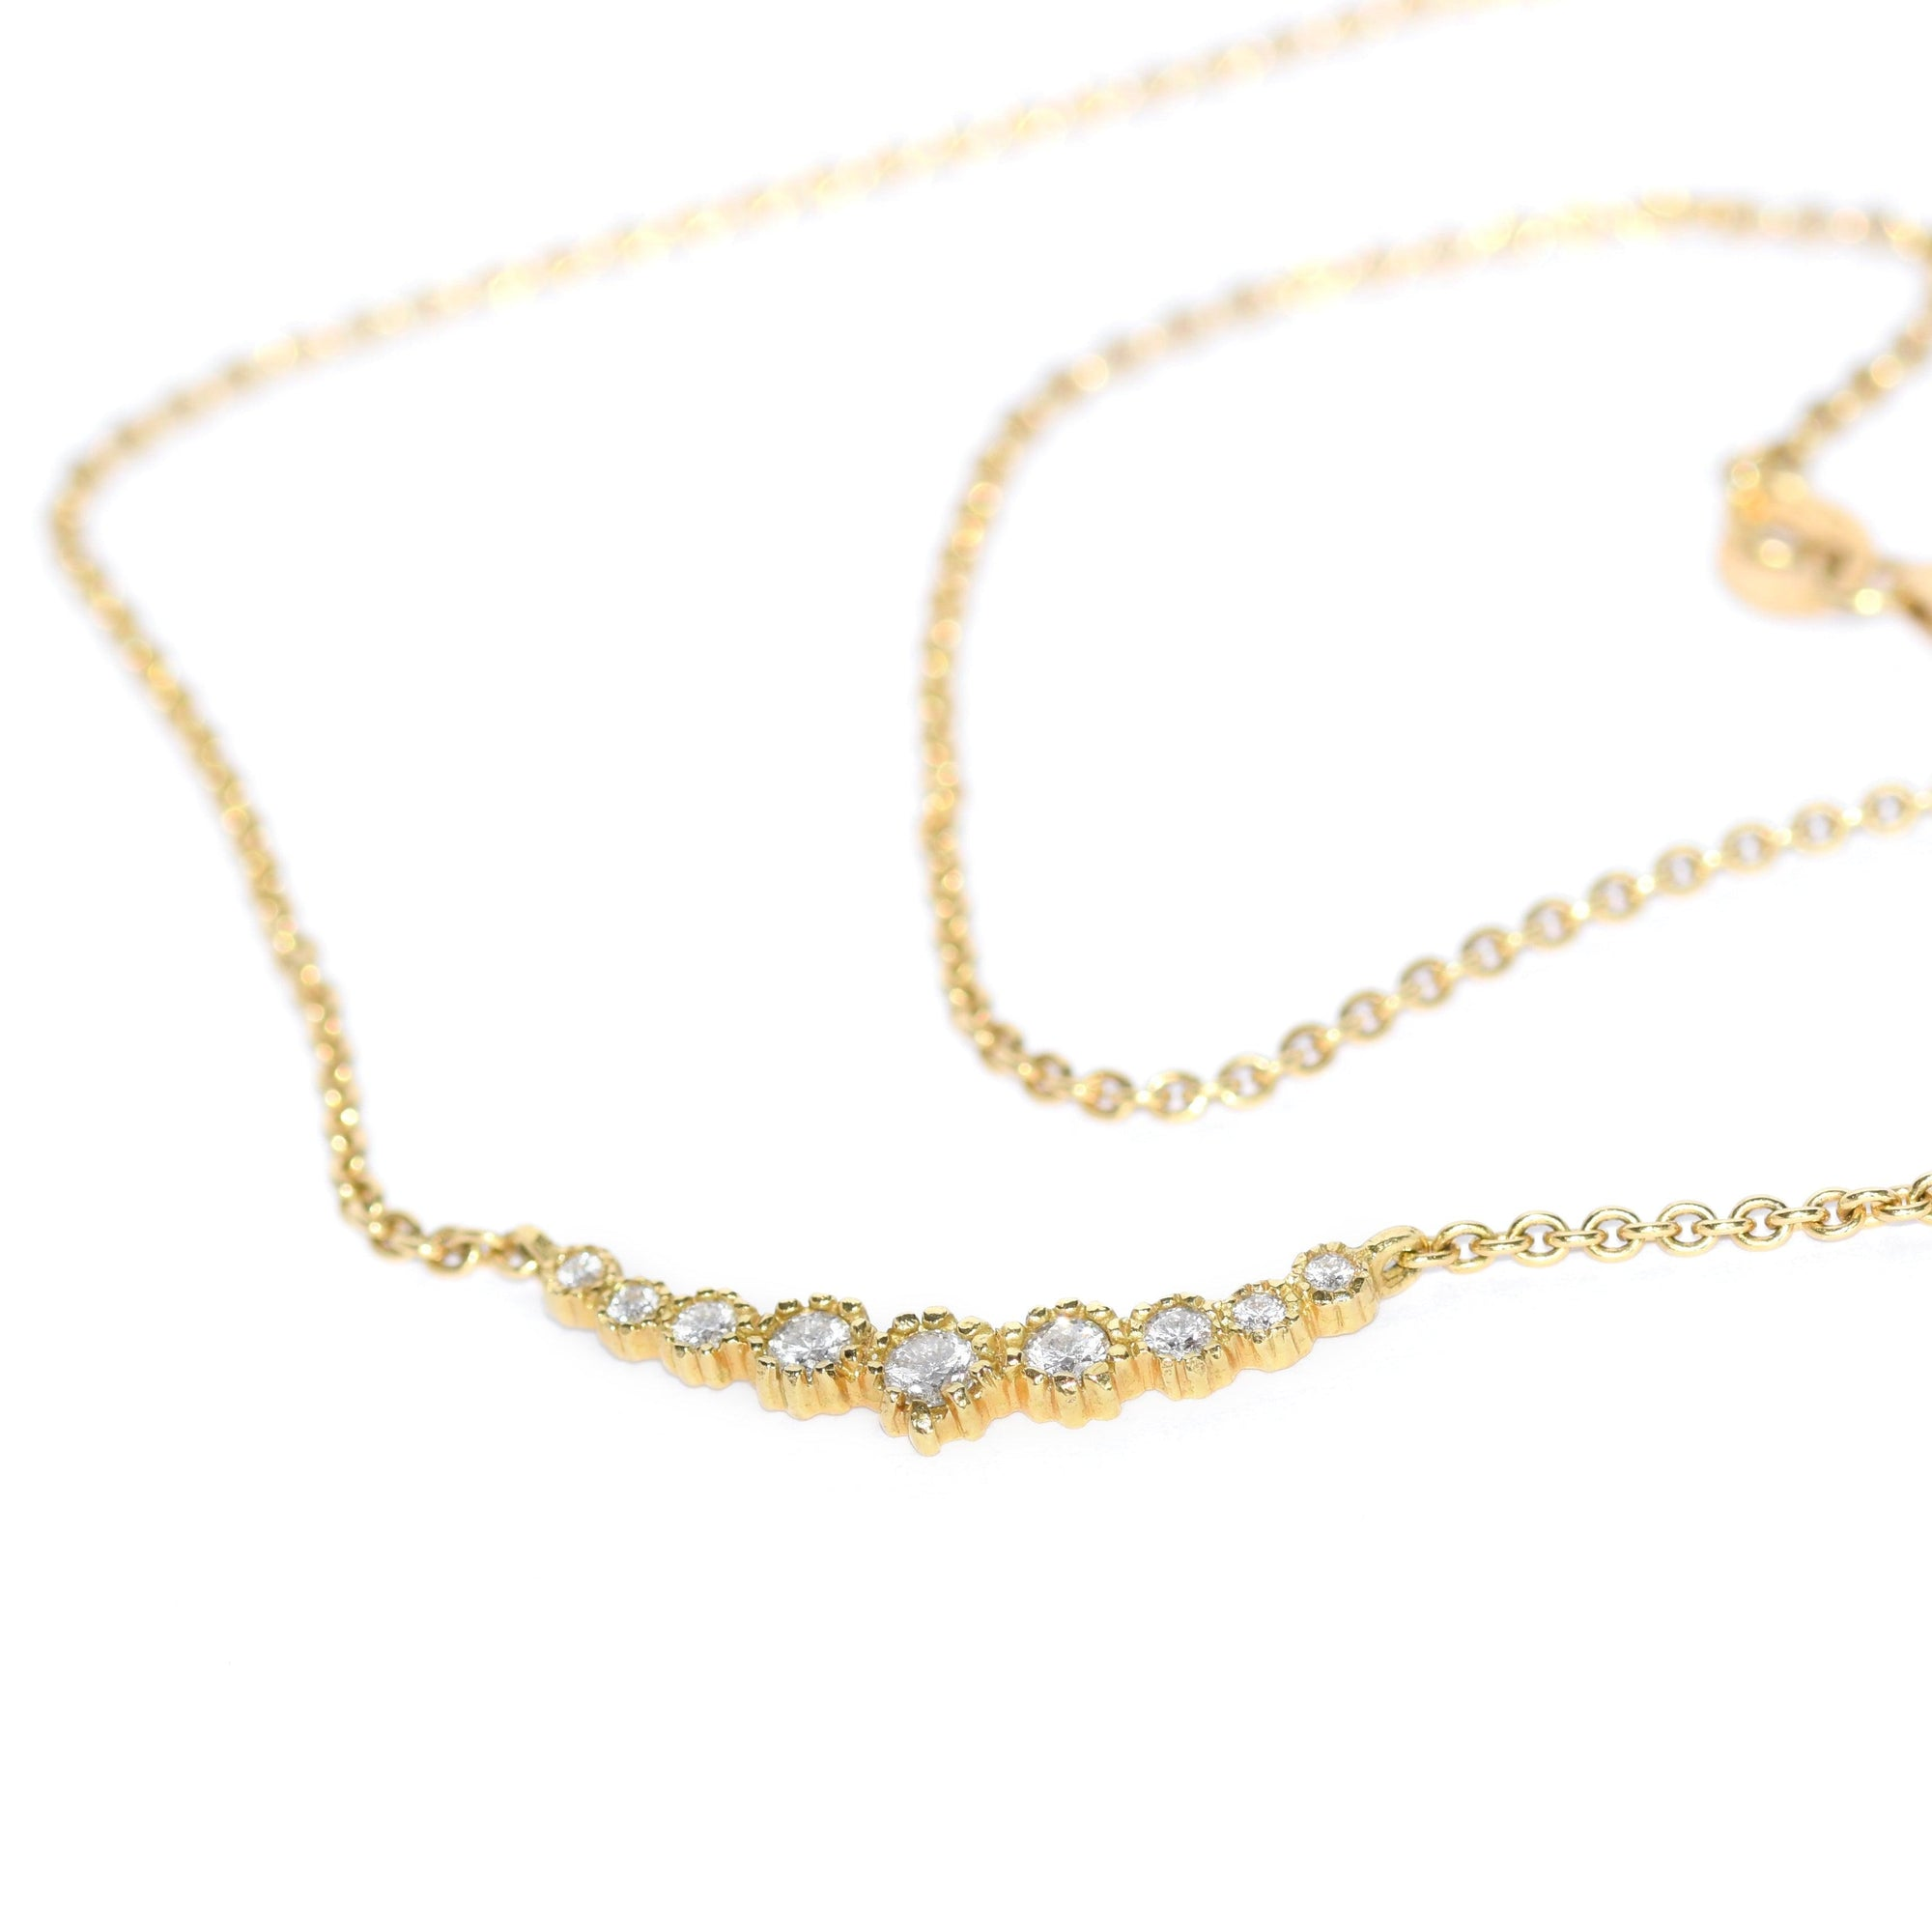 LPD01_Laparra_Jeweles_gold_necklace_boh_style_stackable_necklace_diamond_handmade_in_uk_southbank_cool_jeweller